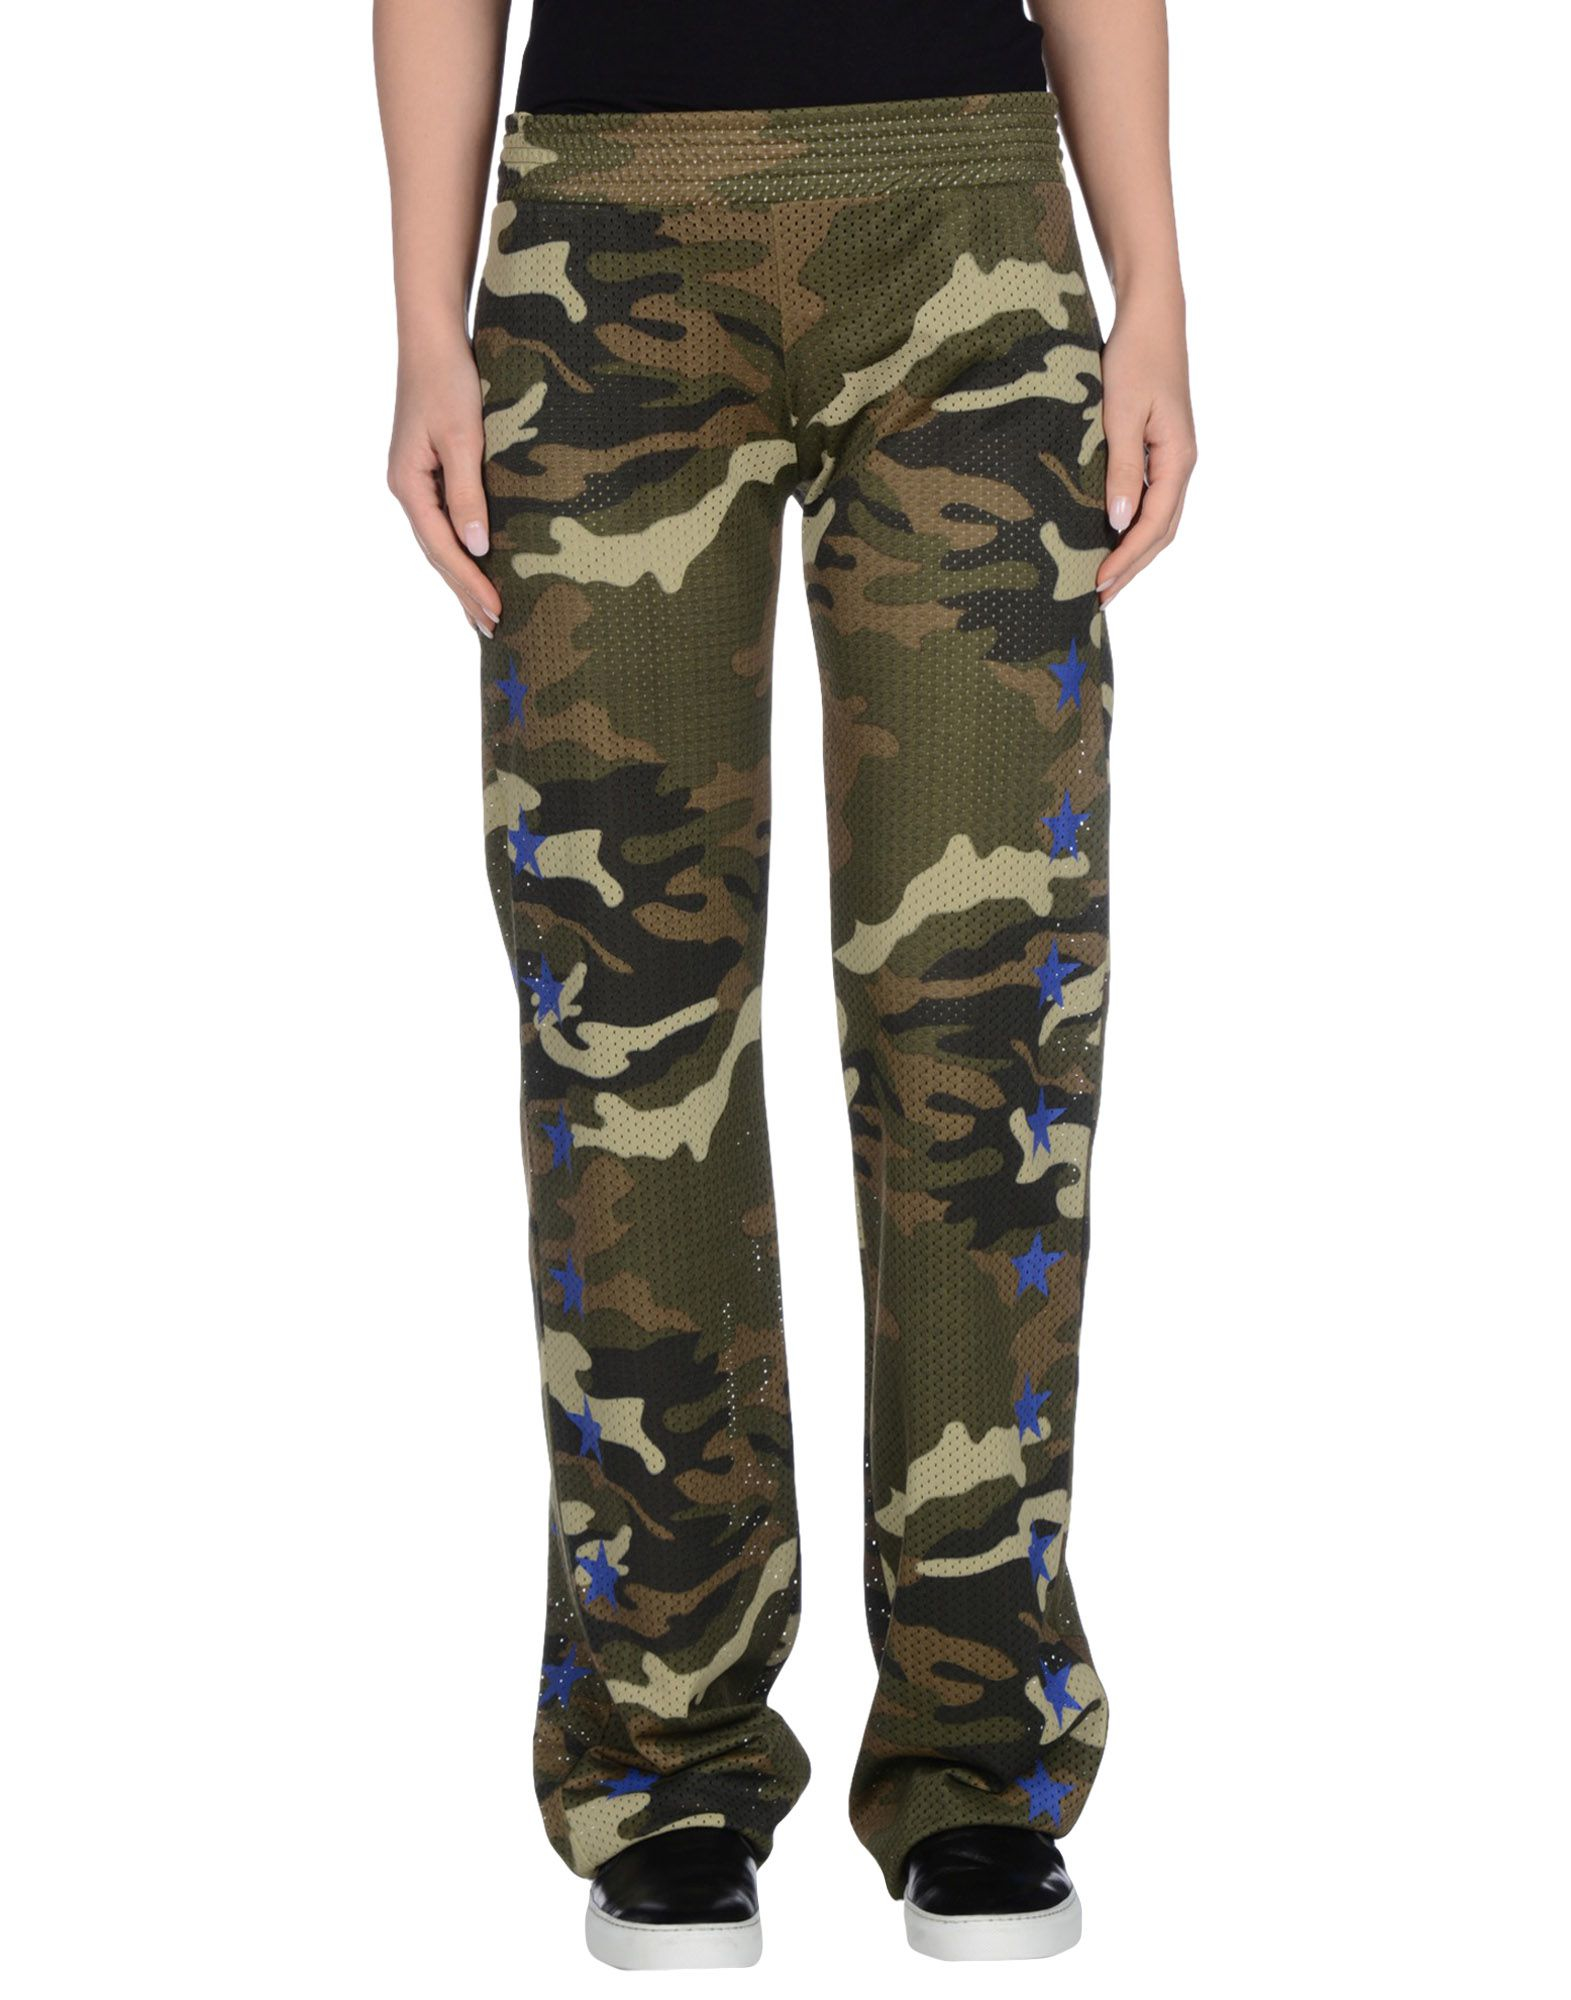 Model Womens Army Military Green Camouflage Skinny Slim Stretch Jeans Pants